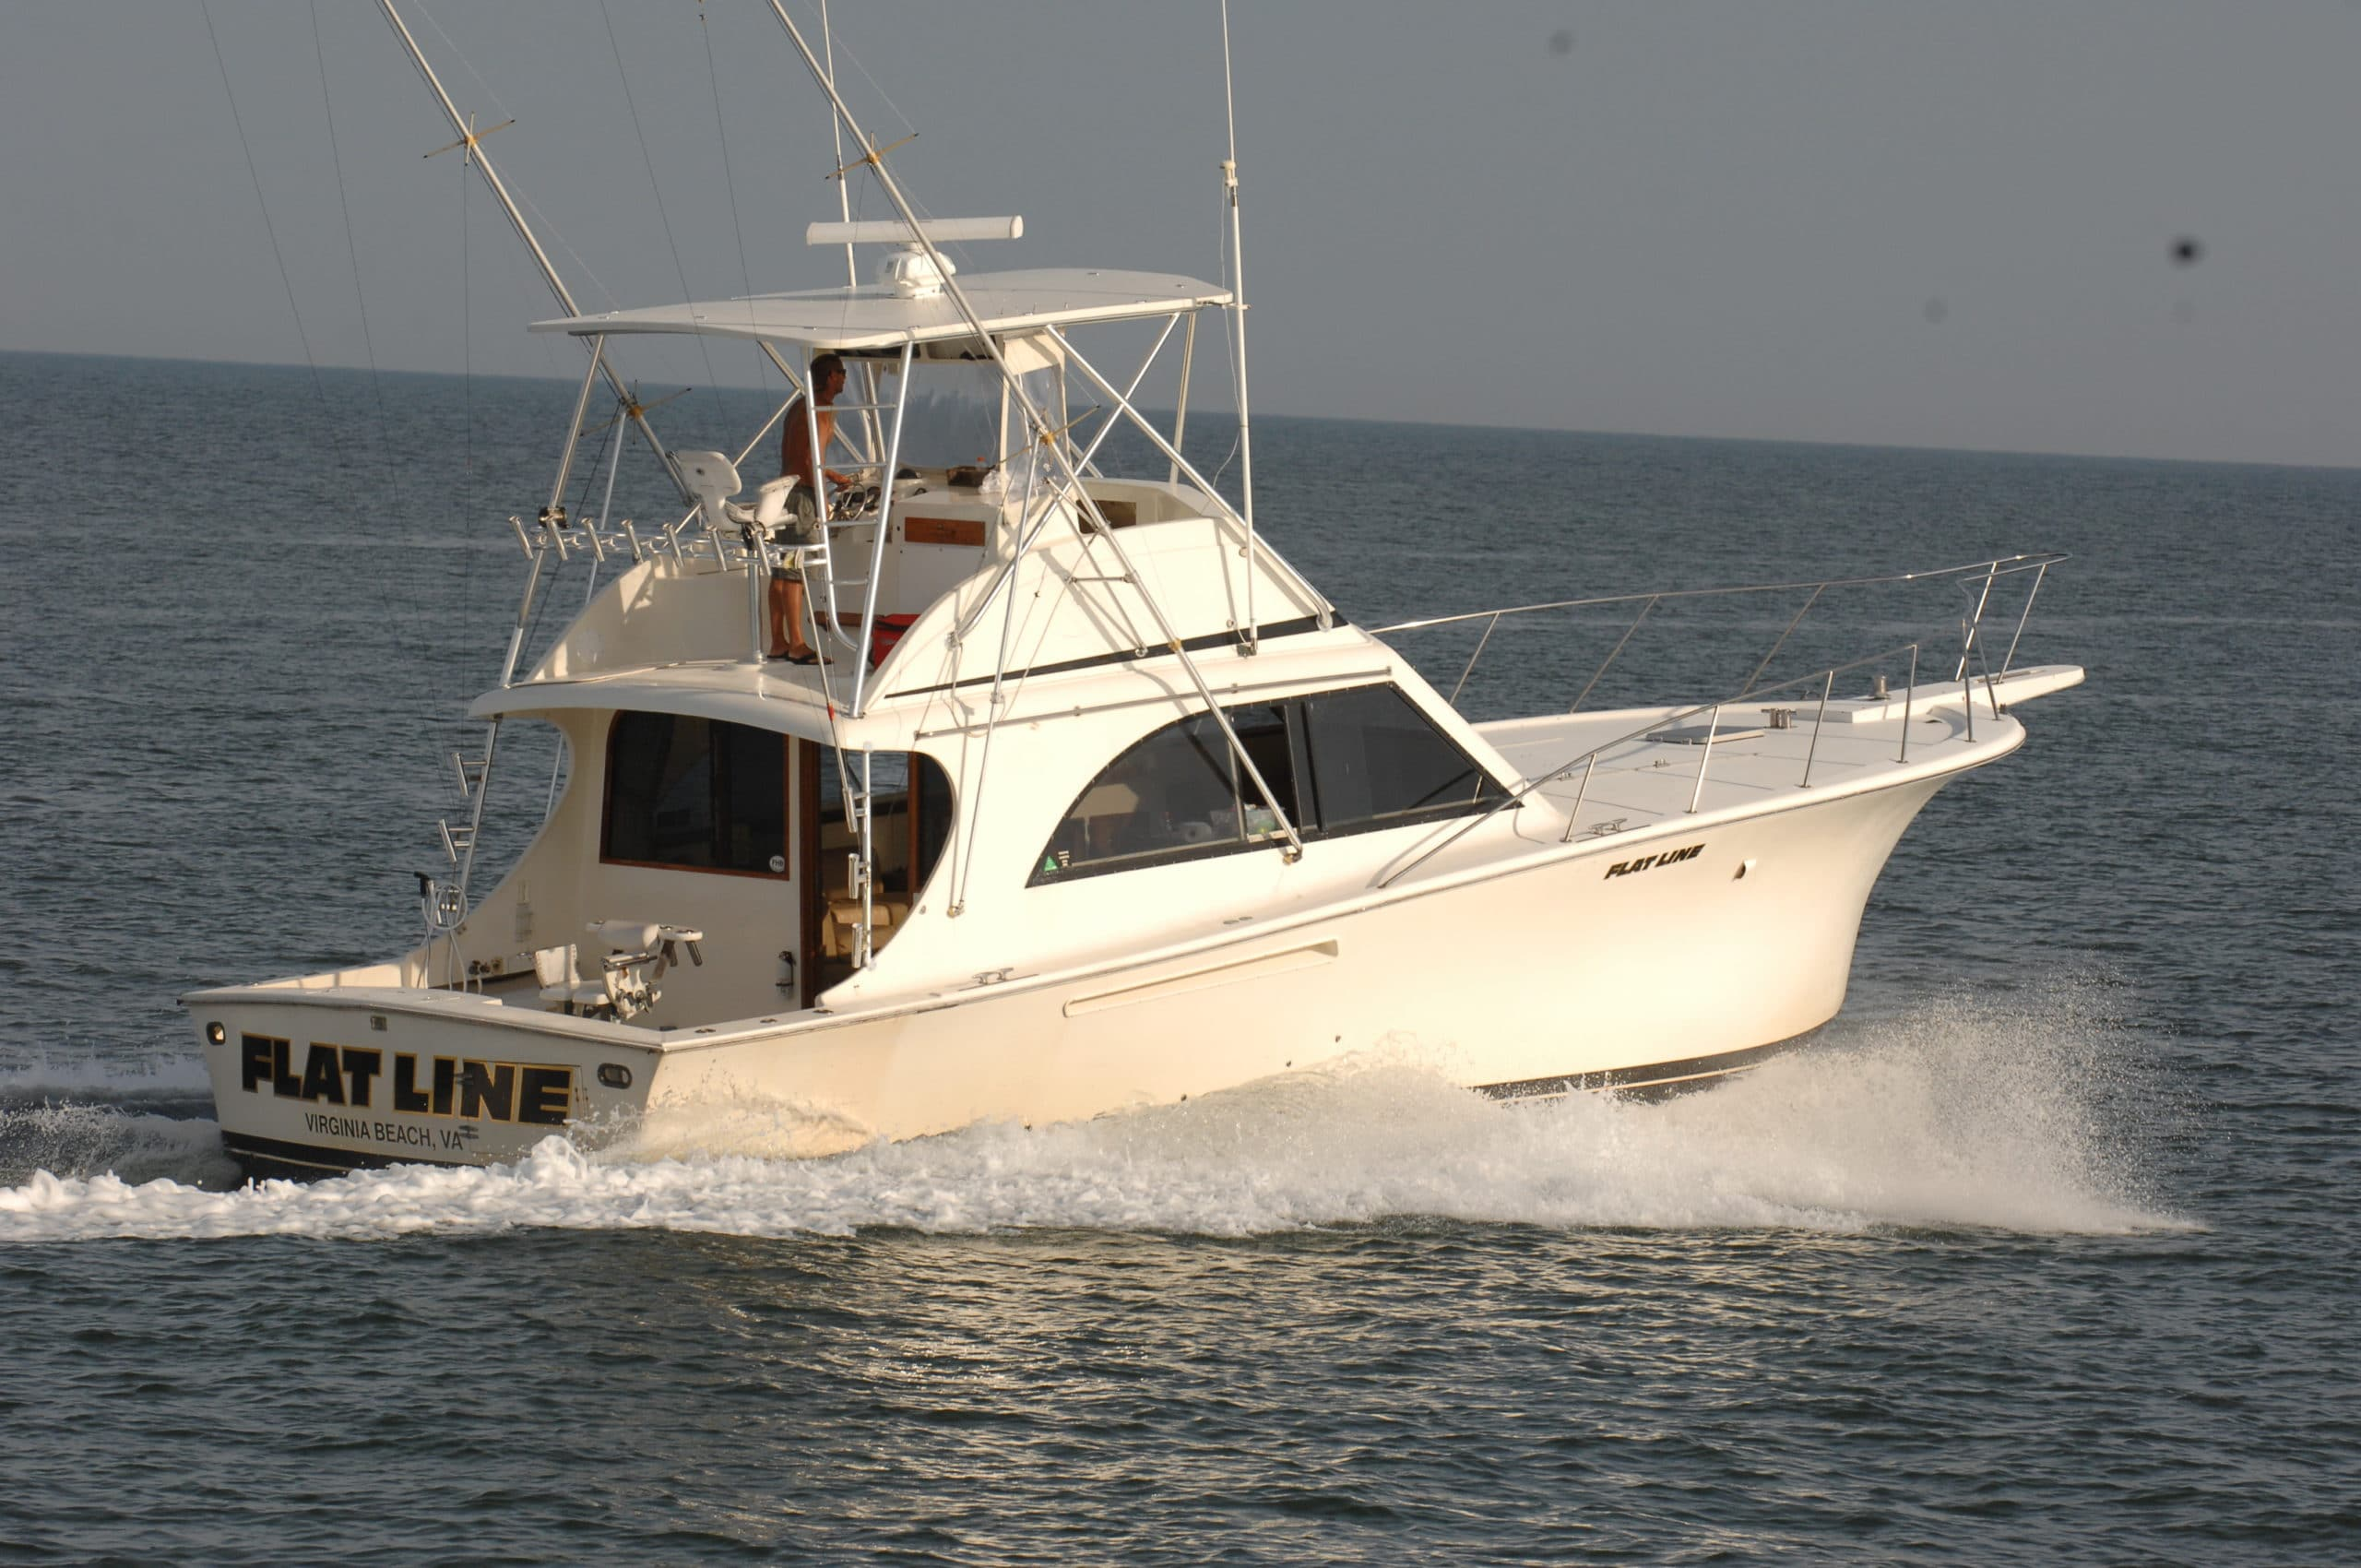 Aquaman sportfishing charters virginia beach va for Virginia beach fishing charters